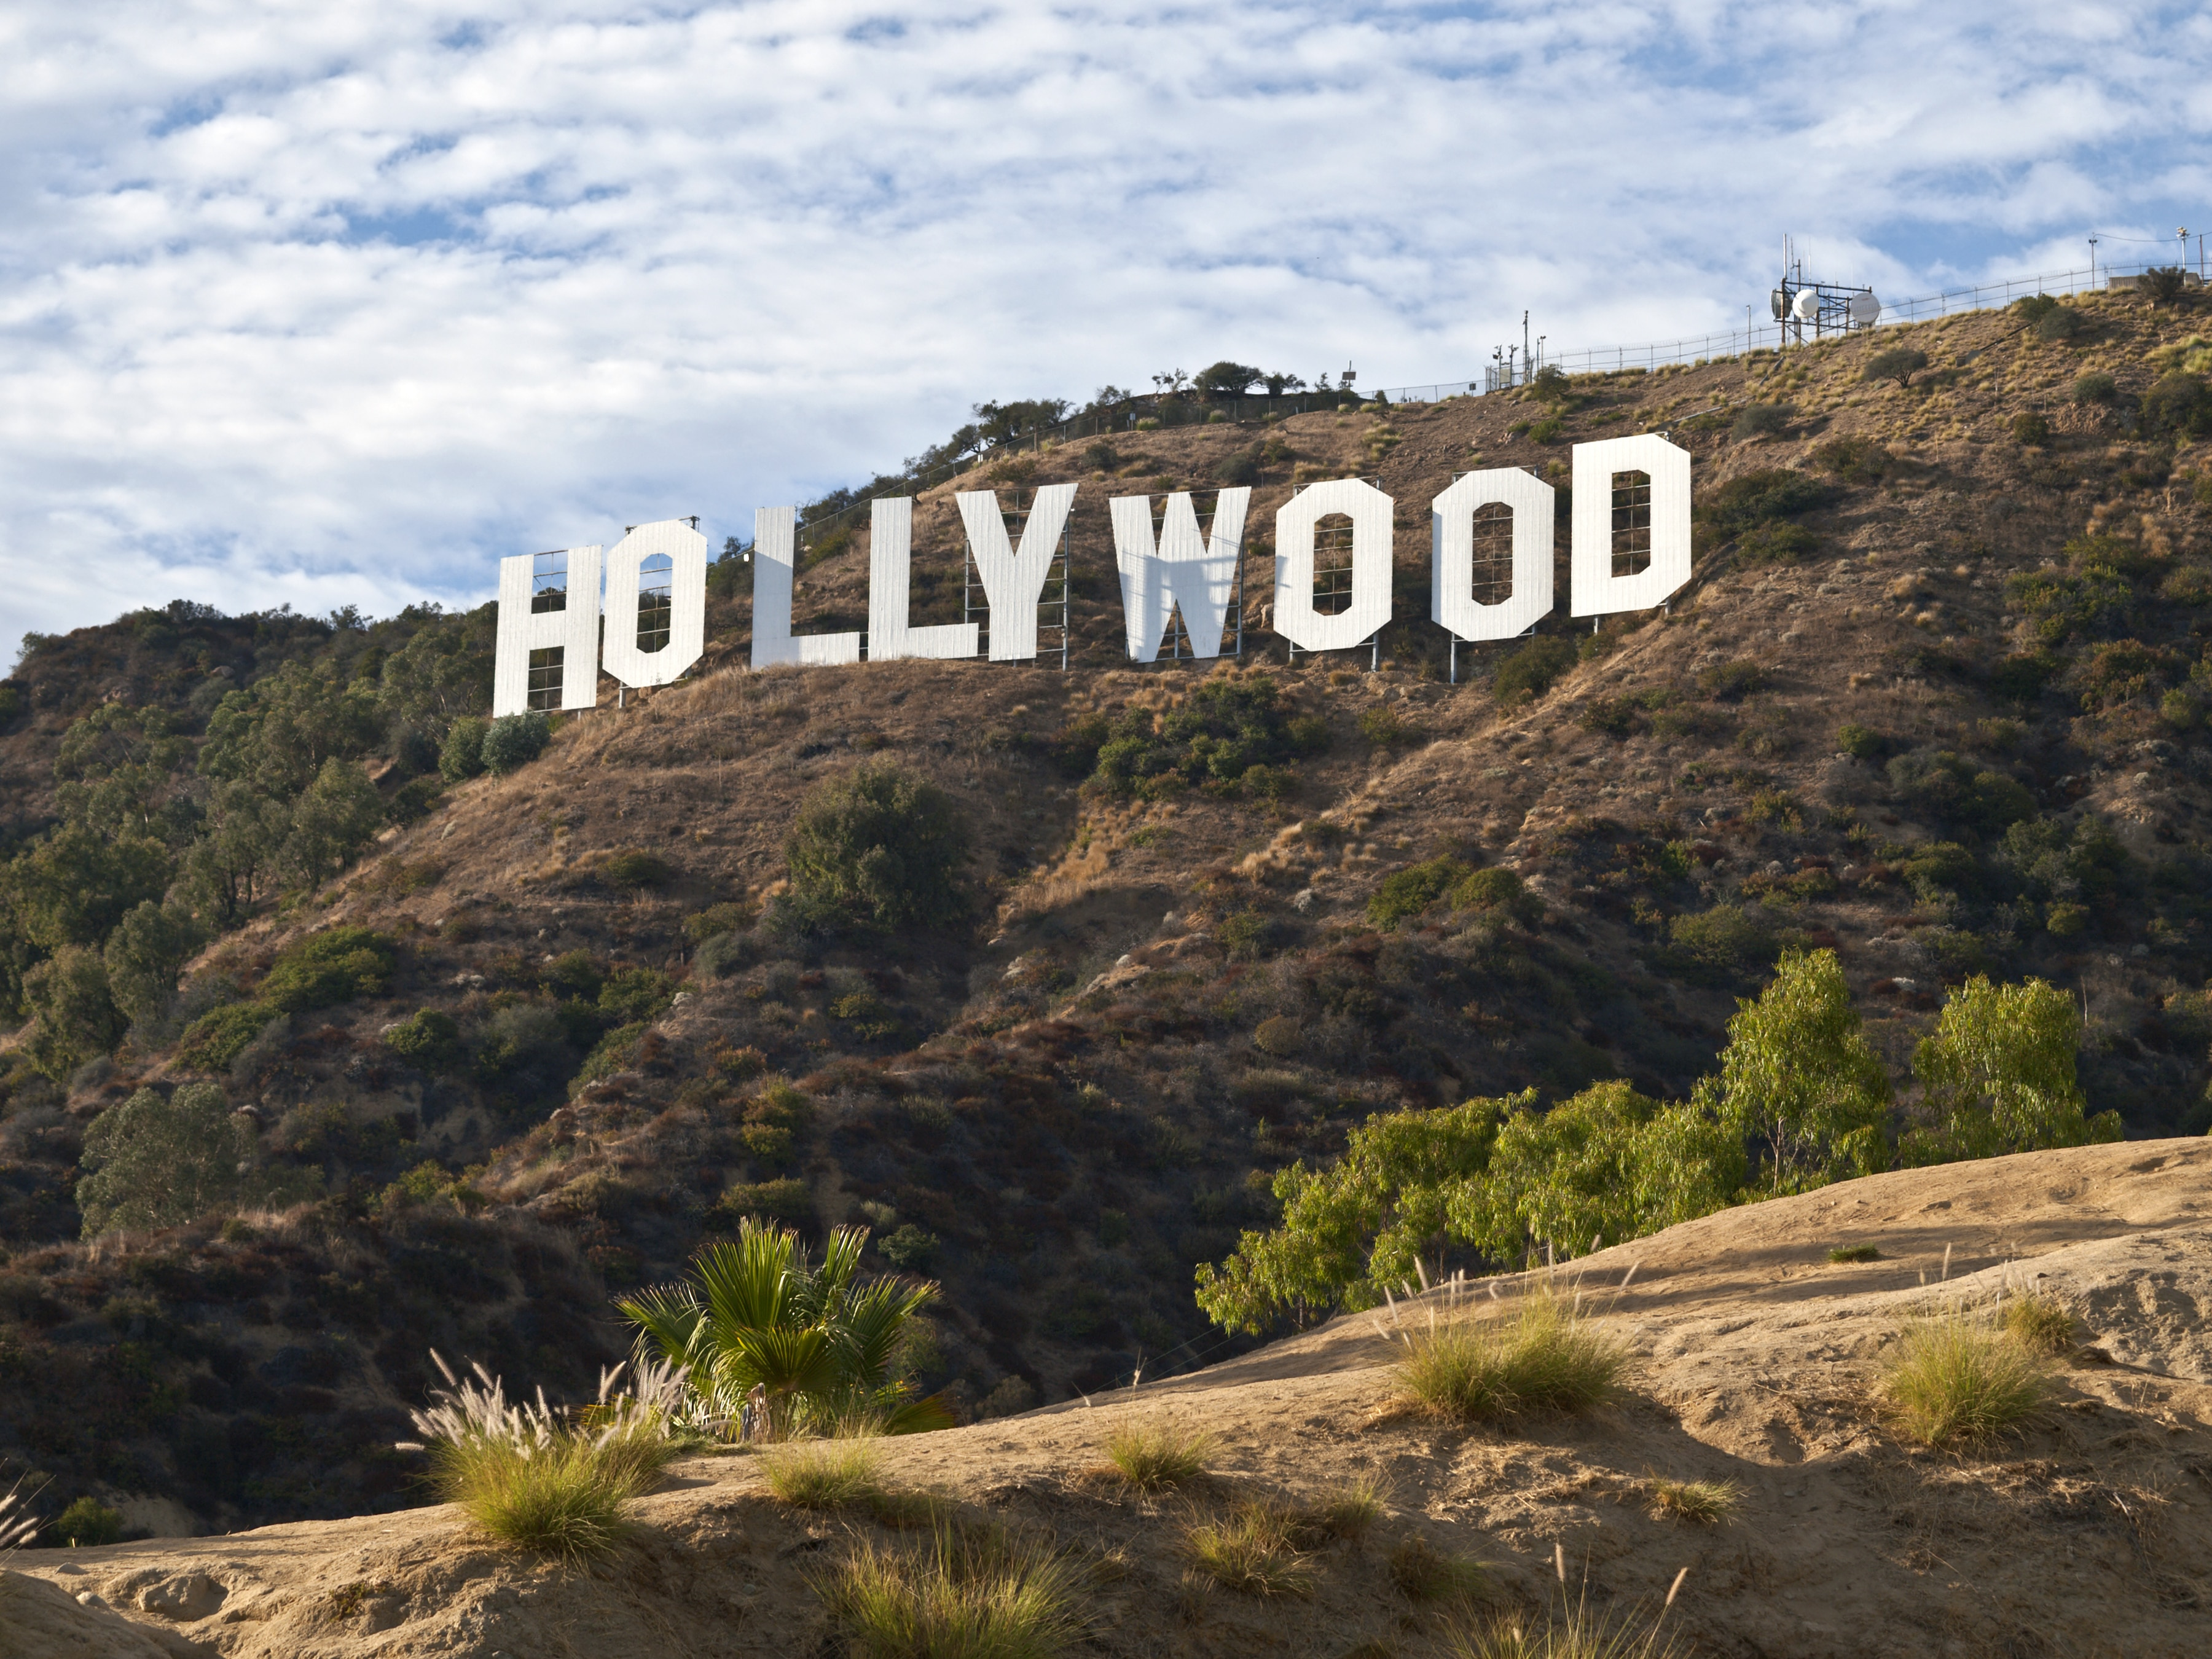 Hollywood sign in the hills of Los Angeles (Thinkstock)